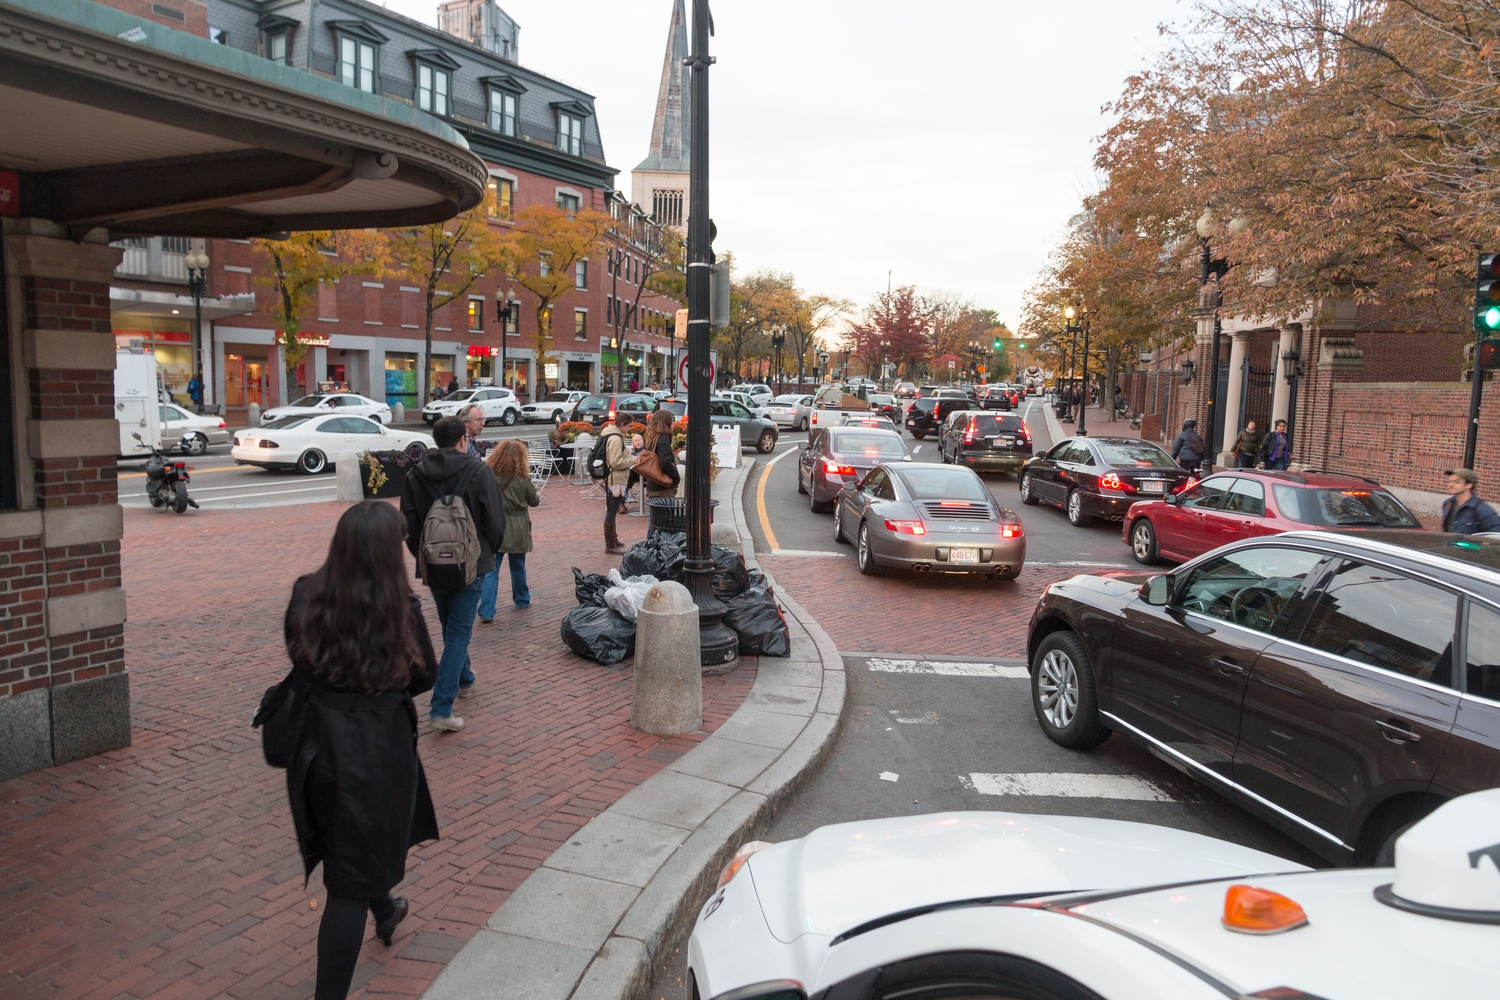 Due to increasing housing prices in and around Harvard Square, many have voiced concern that living in the area has become too costly for a significant number of residents.